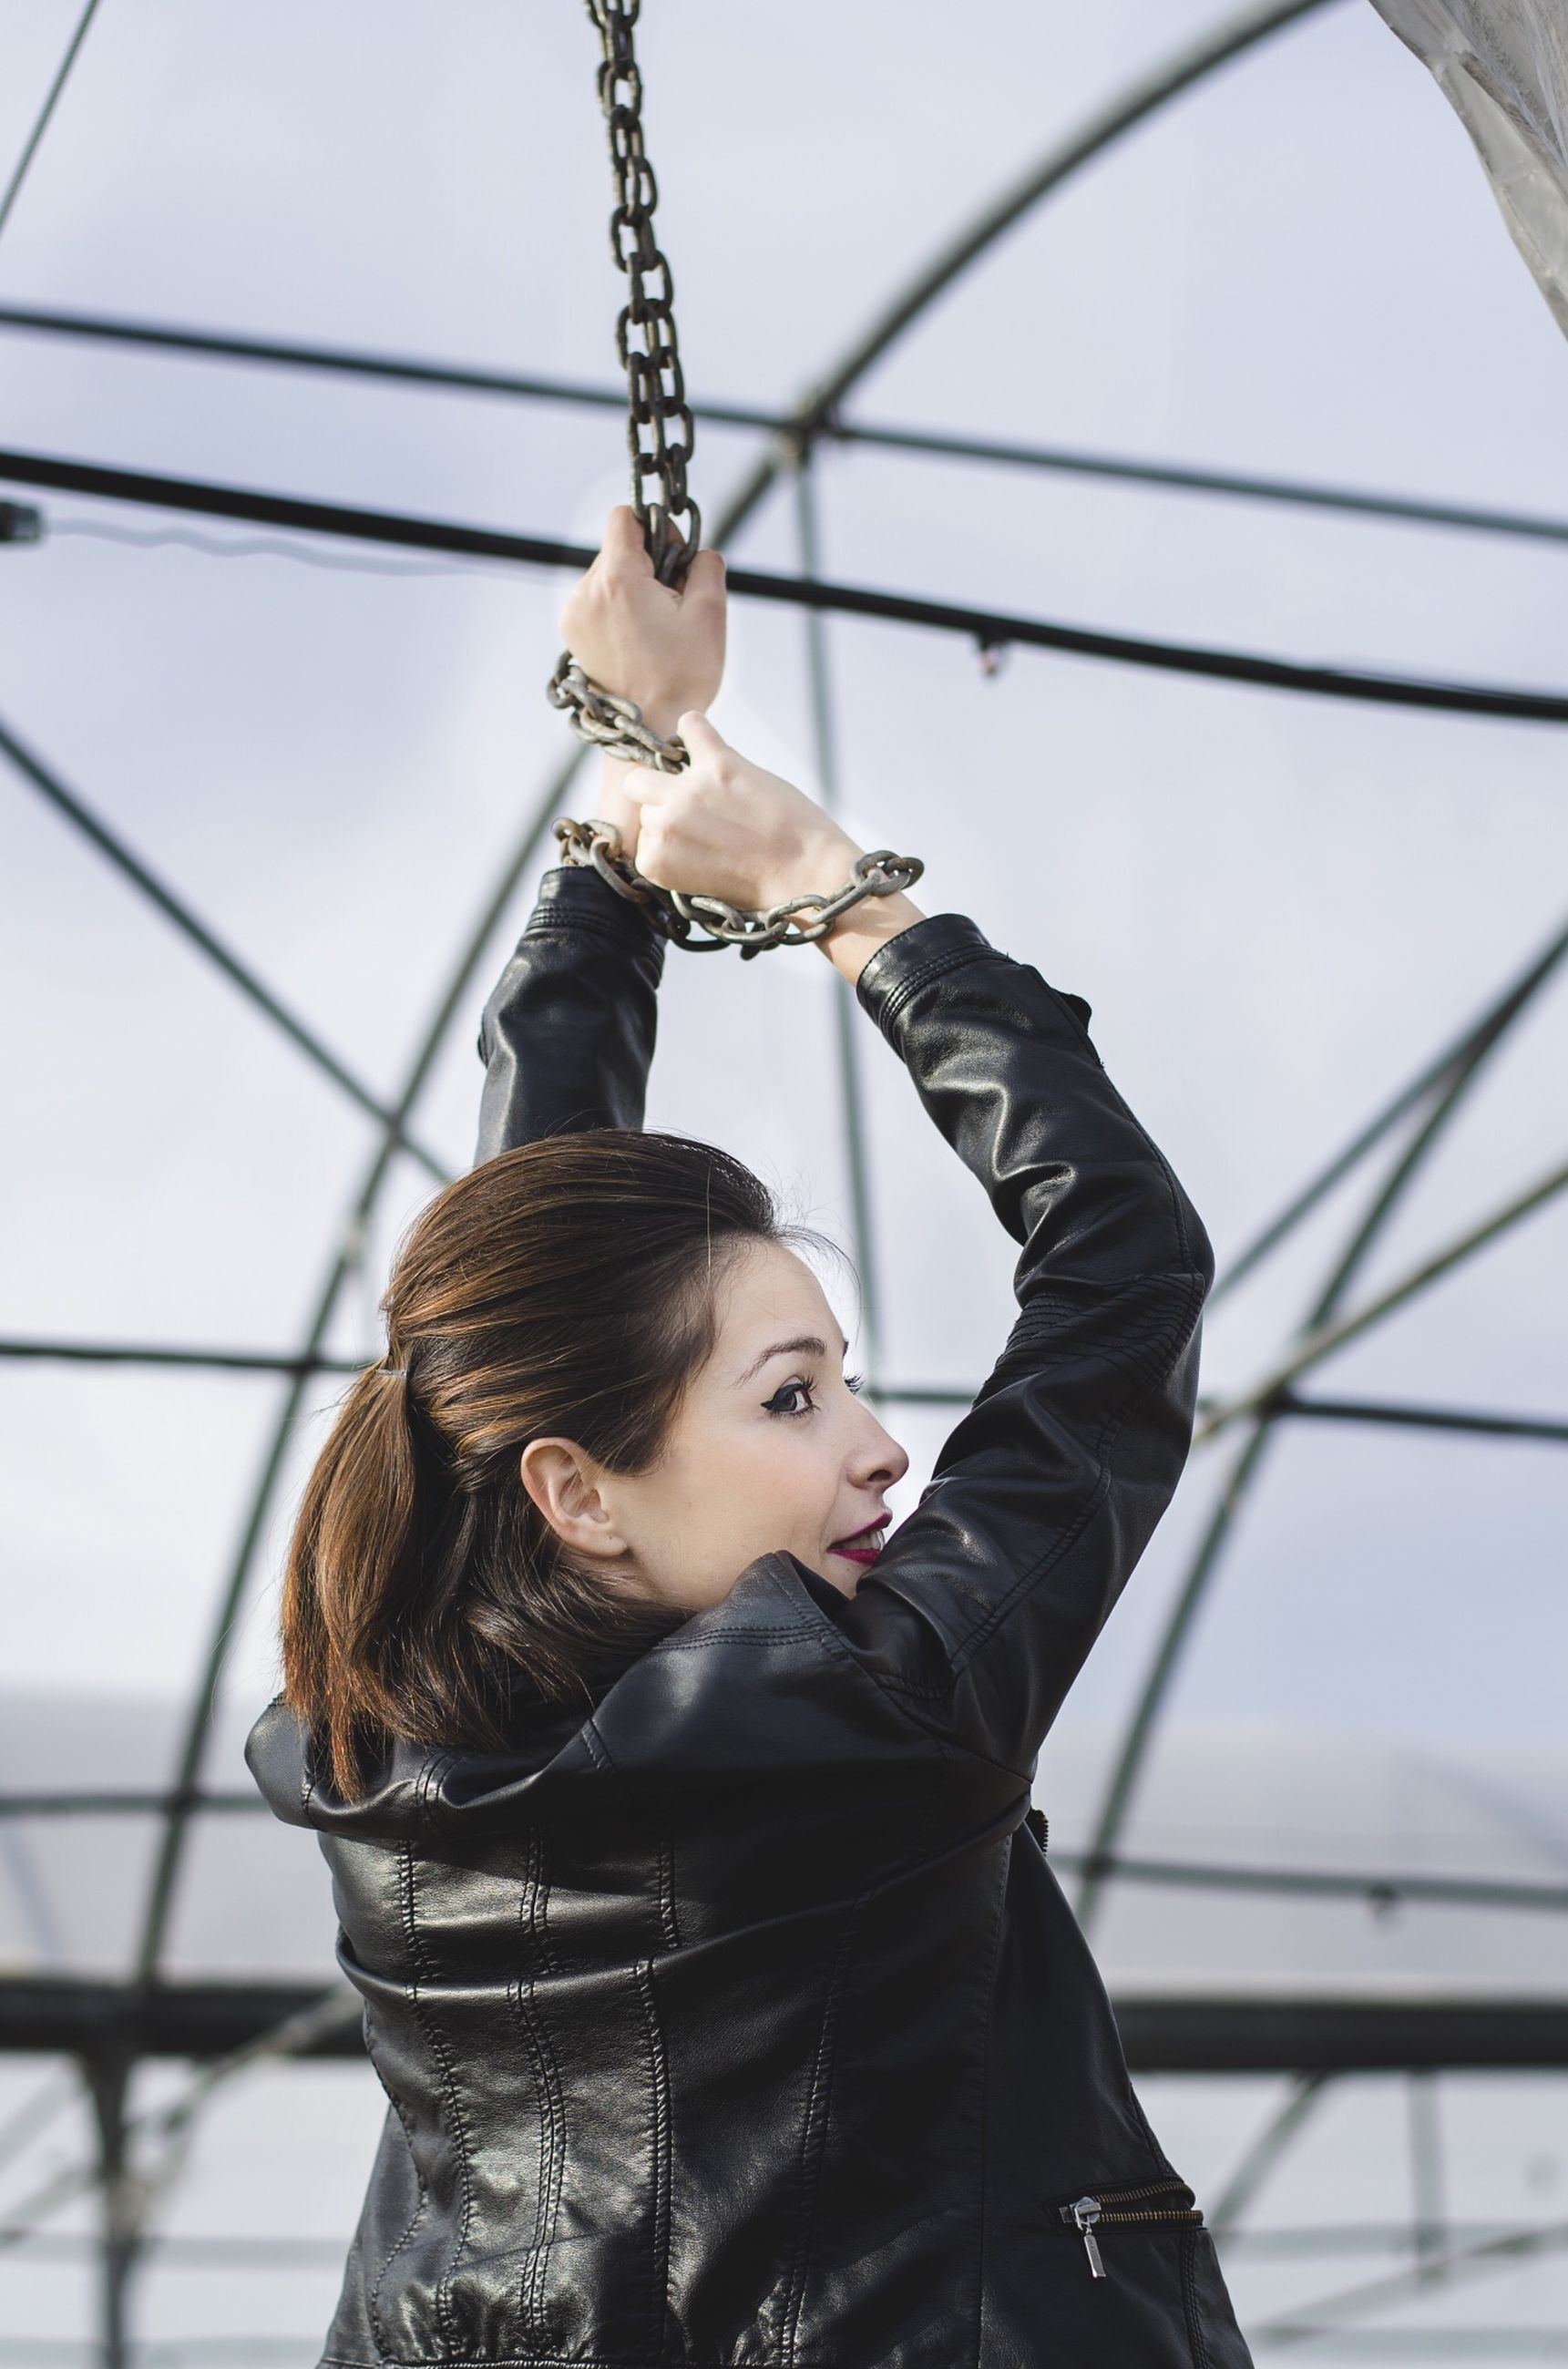 low angle view, lifestyles, leisure activity, holding, focus on foreground, casual clothing, day, metal, hanging, standing, outdoors, men, three quarter length, rope, arts culture and entertainment, front view, amusement park, sky